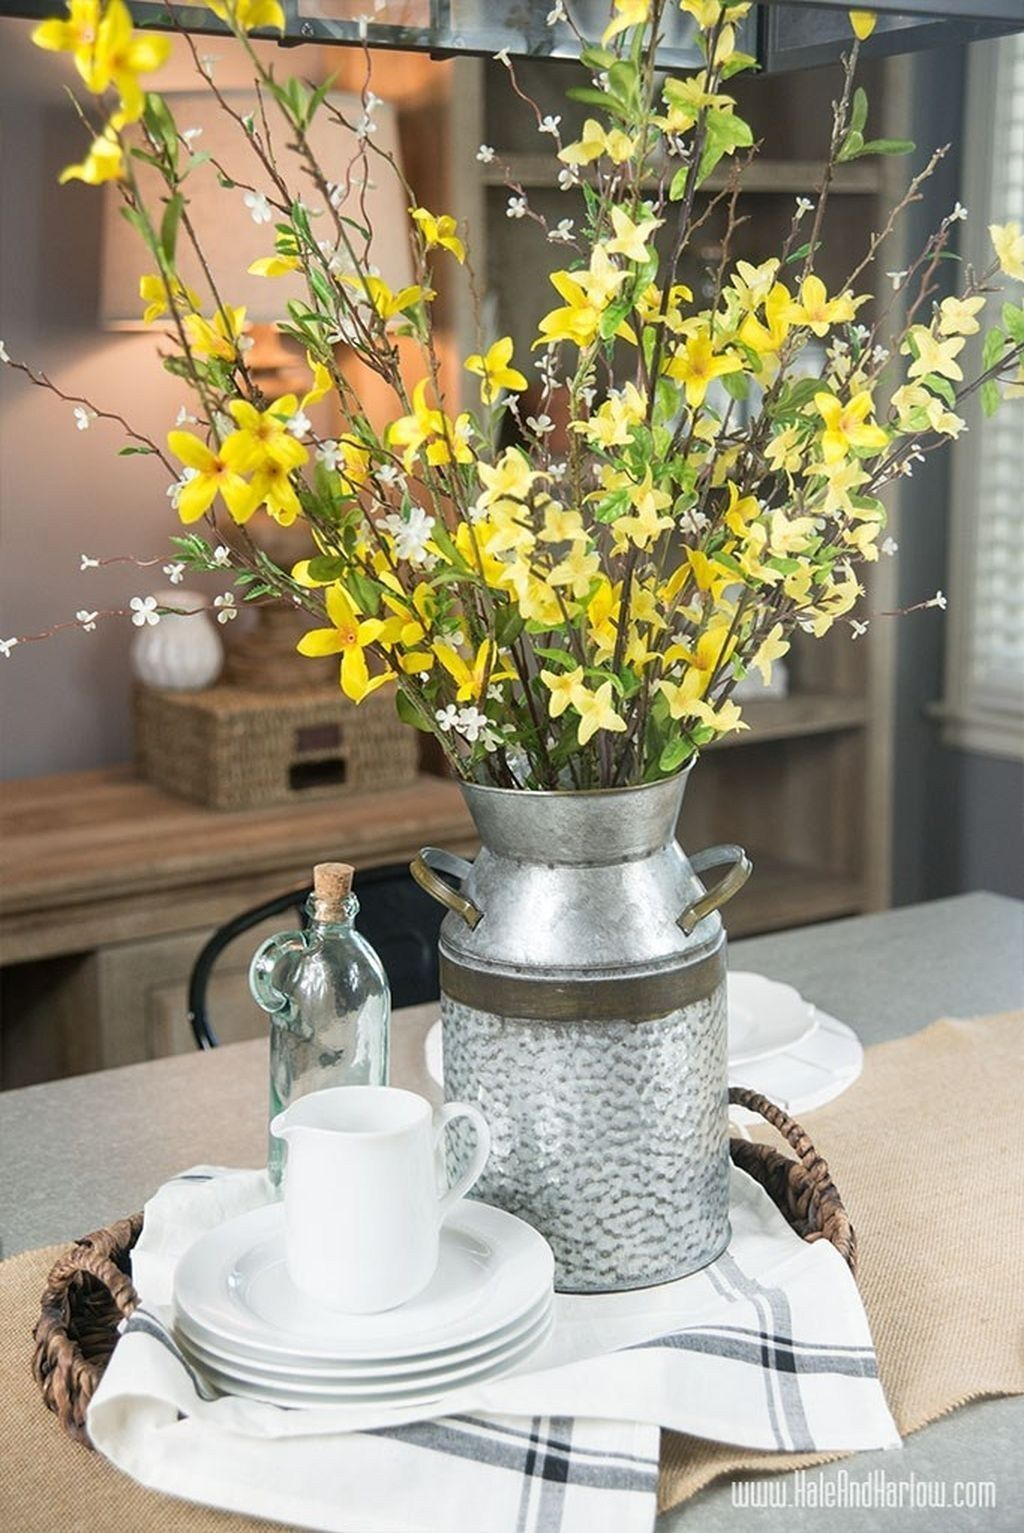 44 Catchy Spring Centerpiece Ideas To Celebrate The Season Dining Room Table Centerpieces Spring Table Decor Dining Table Decor Centerpiece